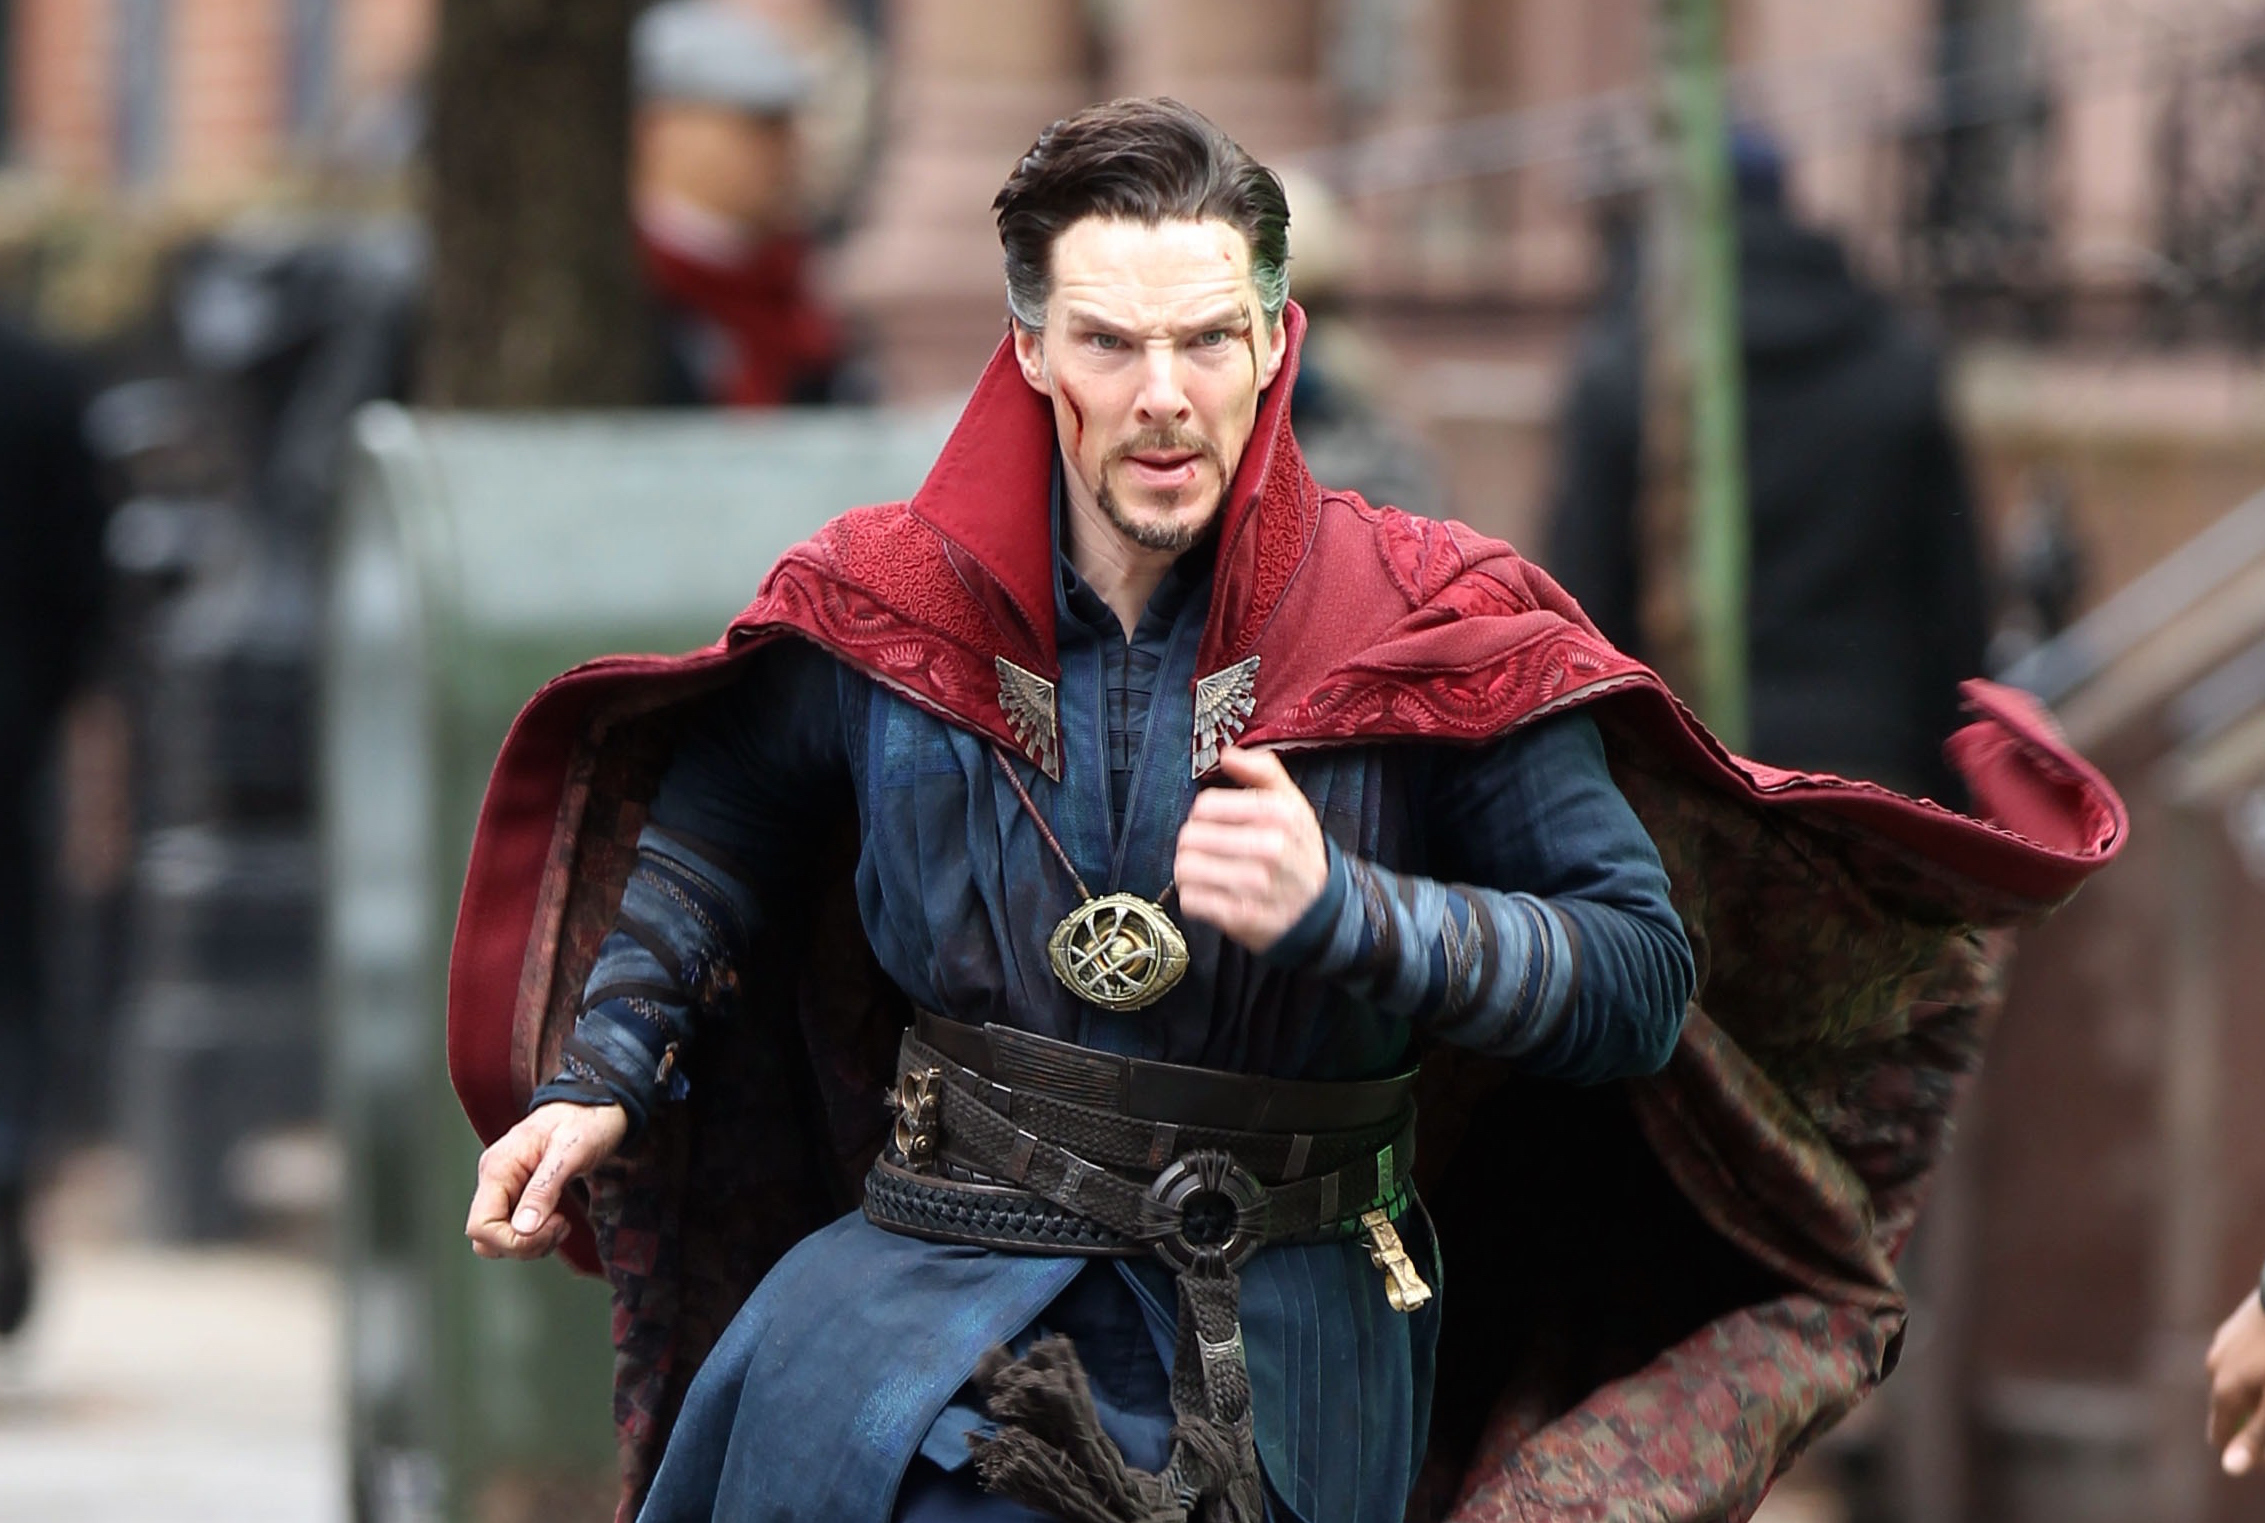 """NEW YORK, NEW YORK - APRIL 02:  Benedict Cumberbatch filming """"Doctor Strange"""" on April 2, 2016 in New York City.  (Photo by Steve Sands/GC Images)"""